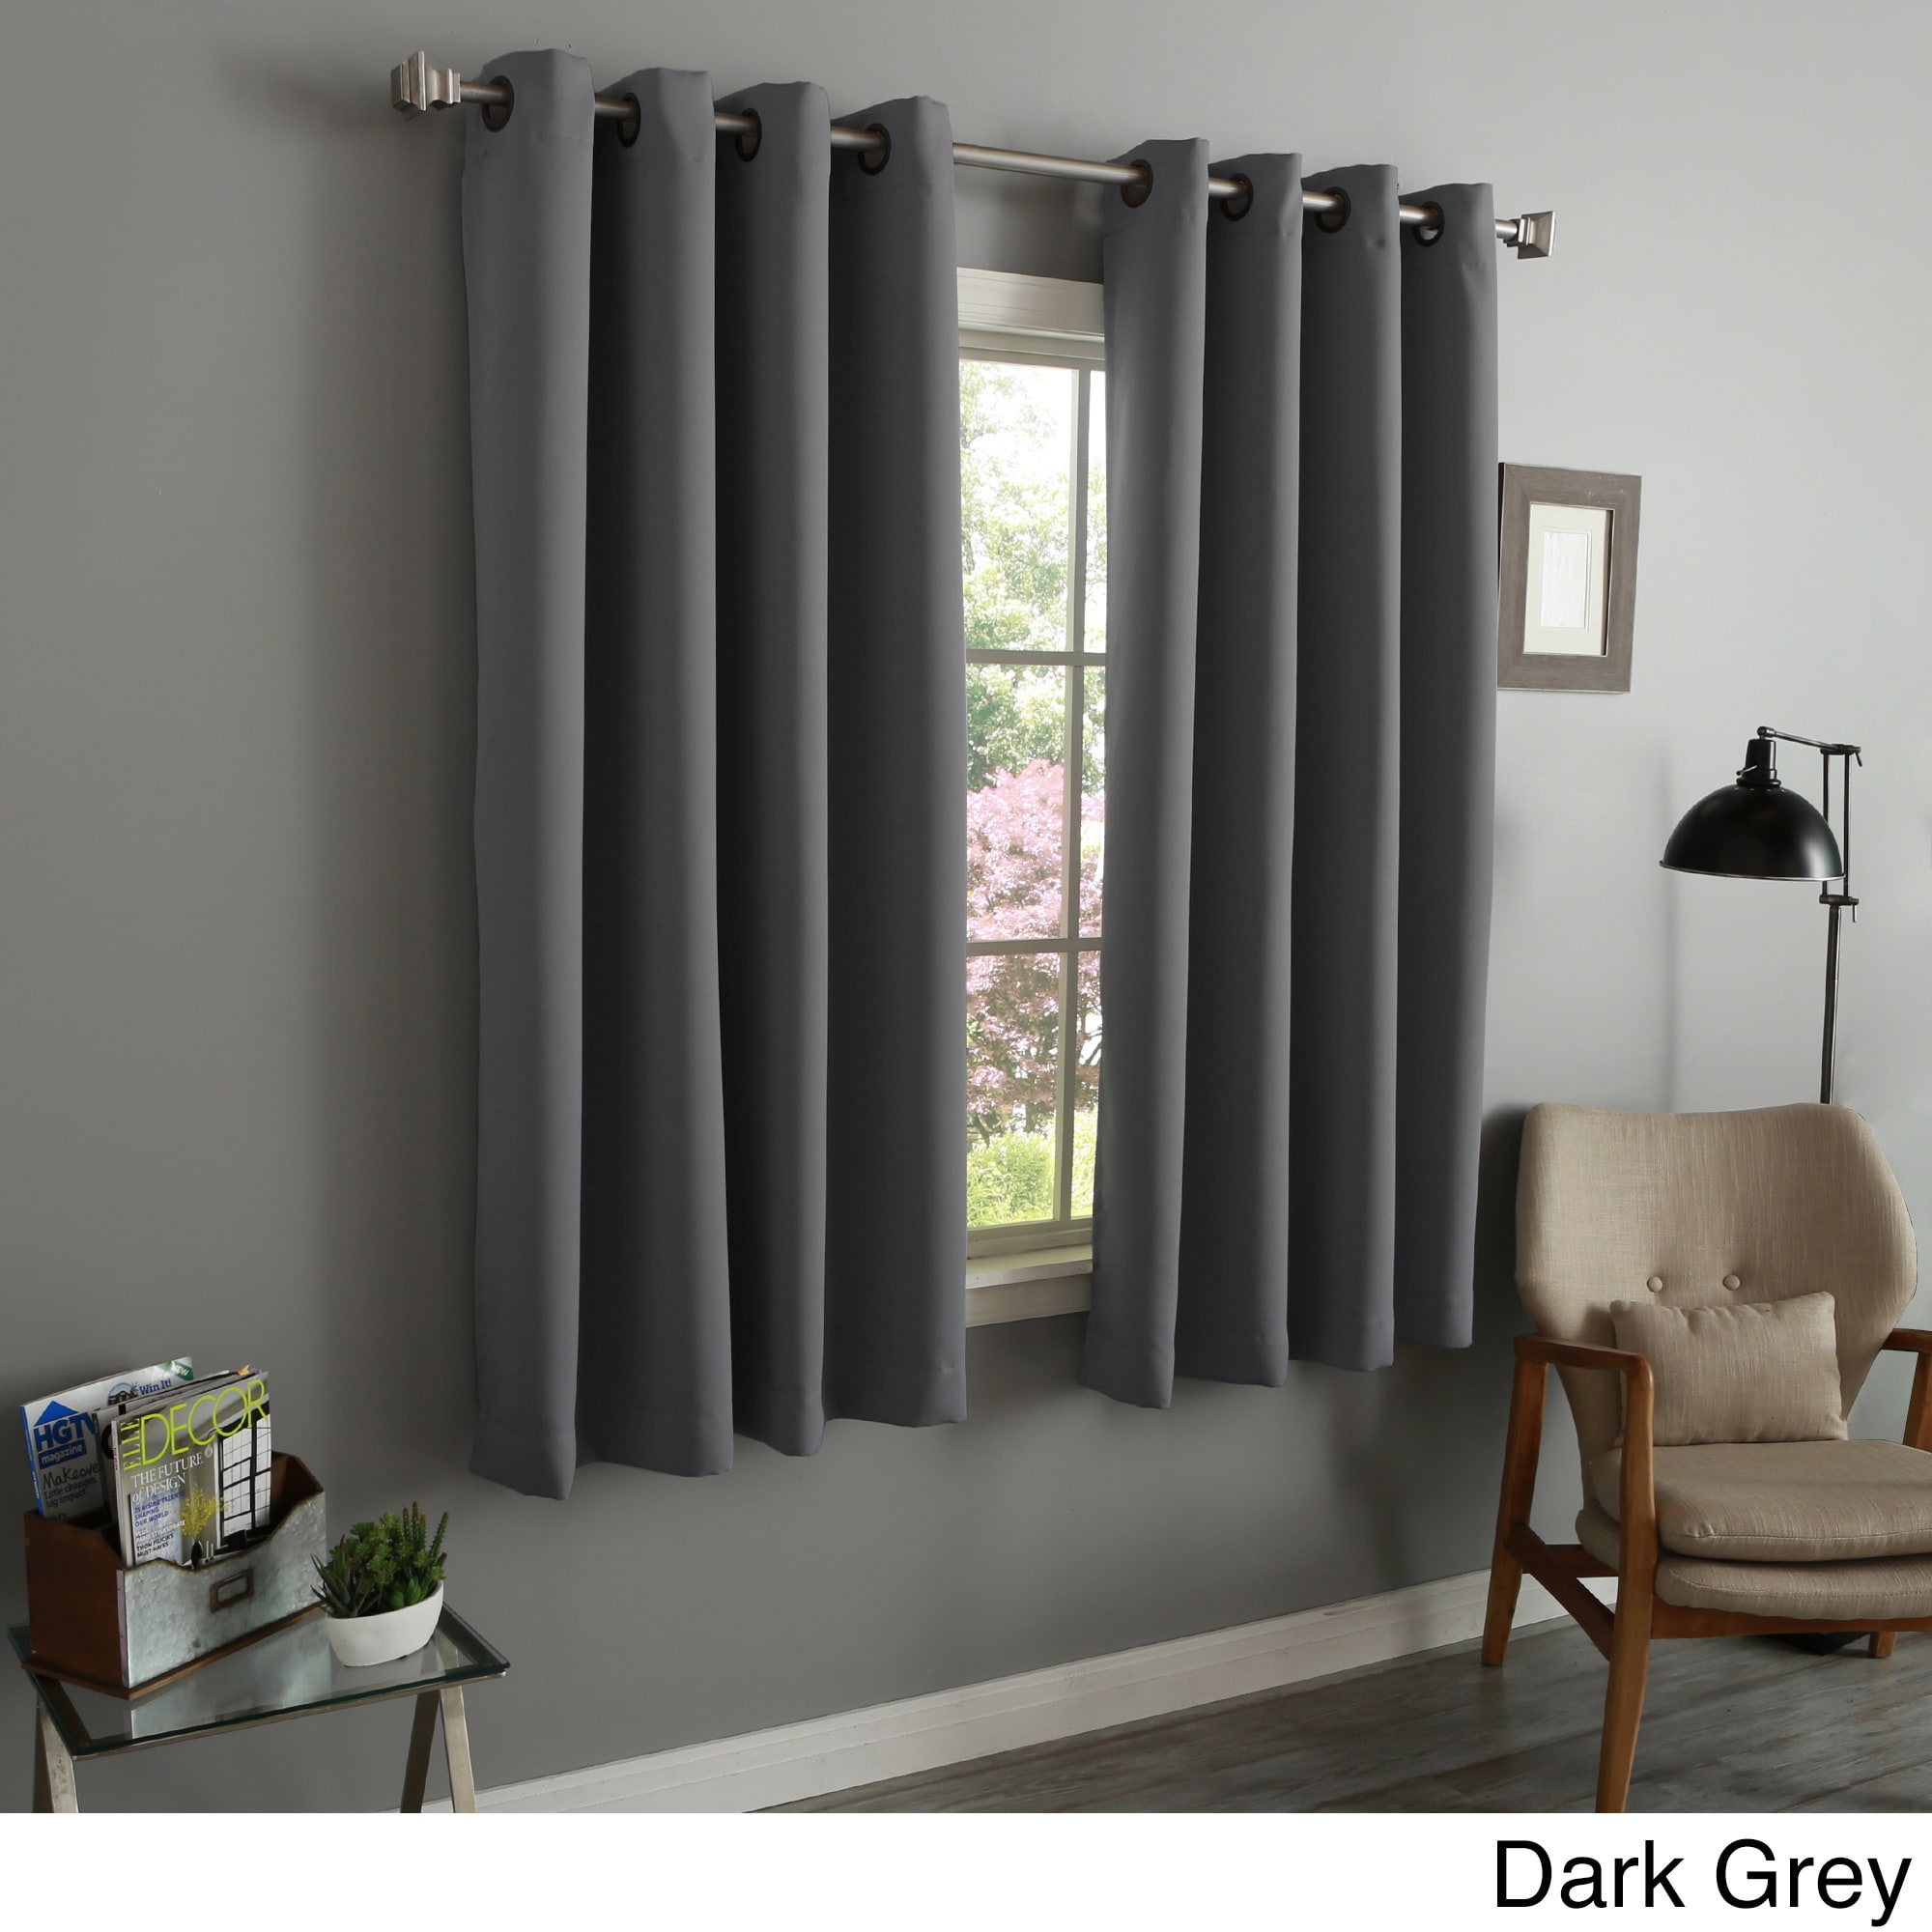 aurora home 54 inch thermal insulated blackout grommet top curtain panel pair ebay. Black Bedroom Furniture Sets. Home Design Ideas